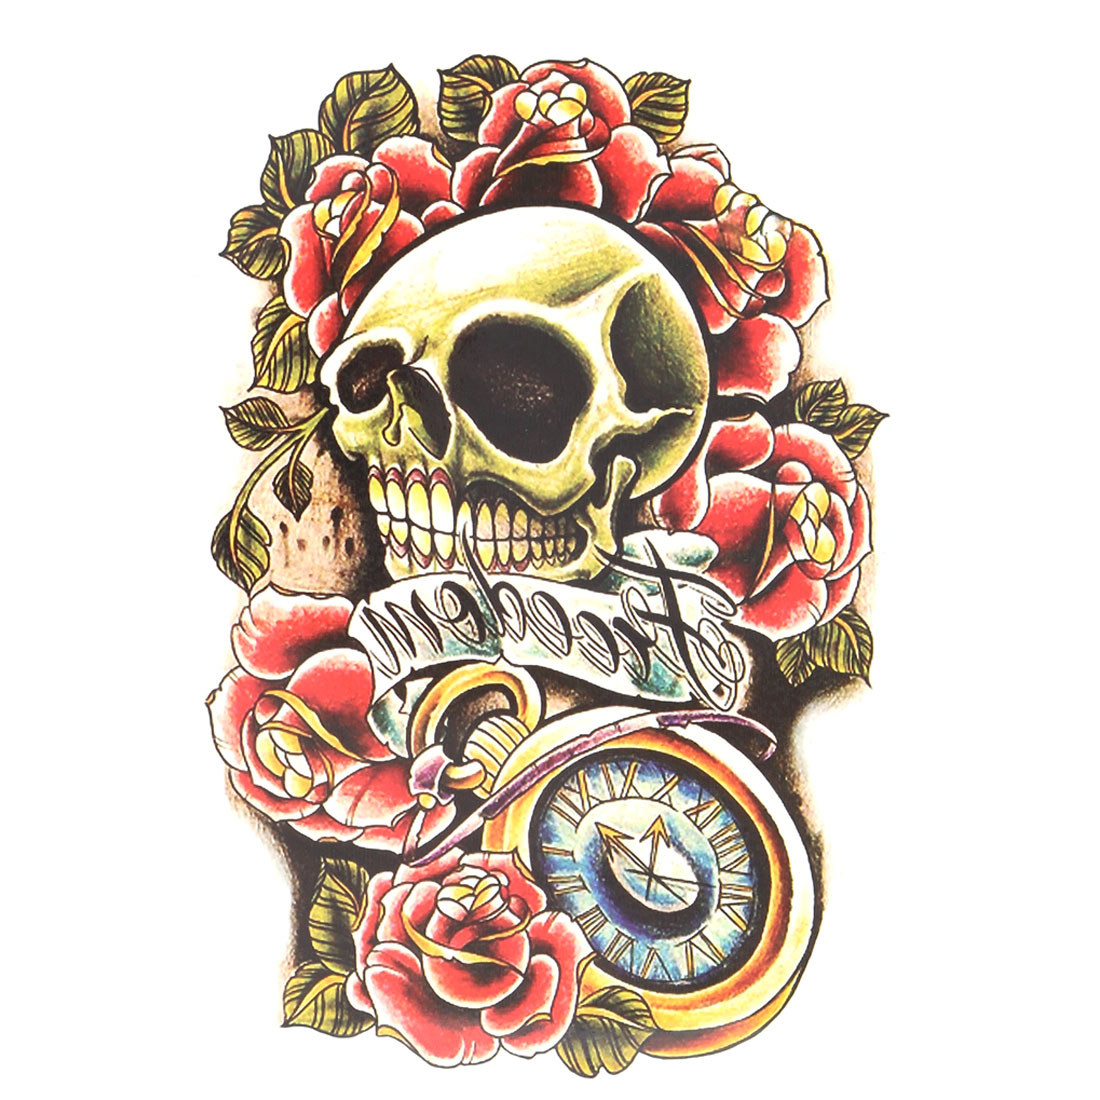 Man Skull Flower Pattern Removable Body Art Paper Sticker Decal Temporary Tattoo